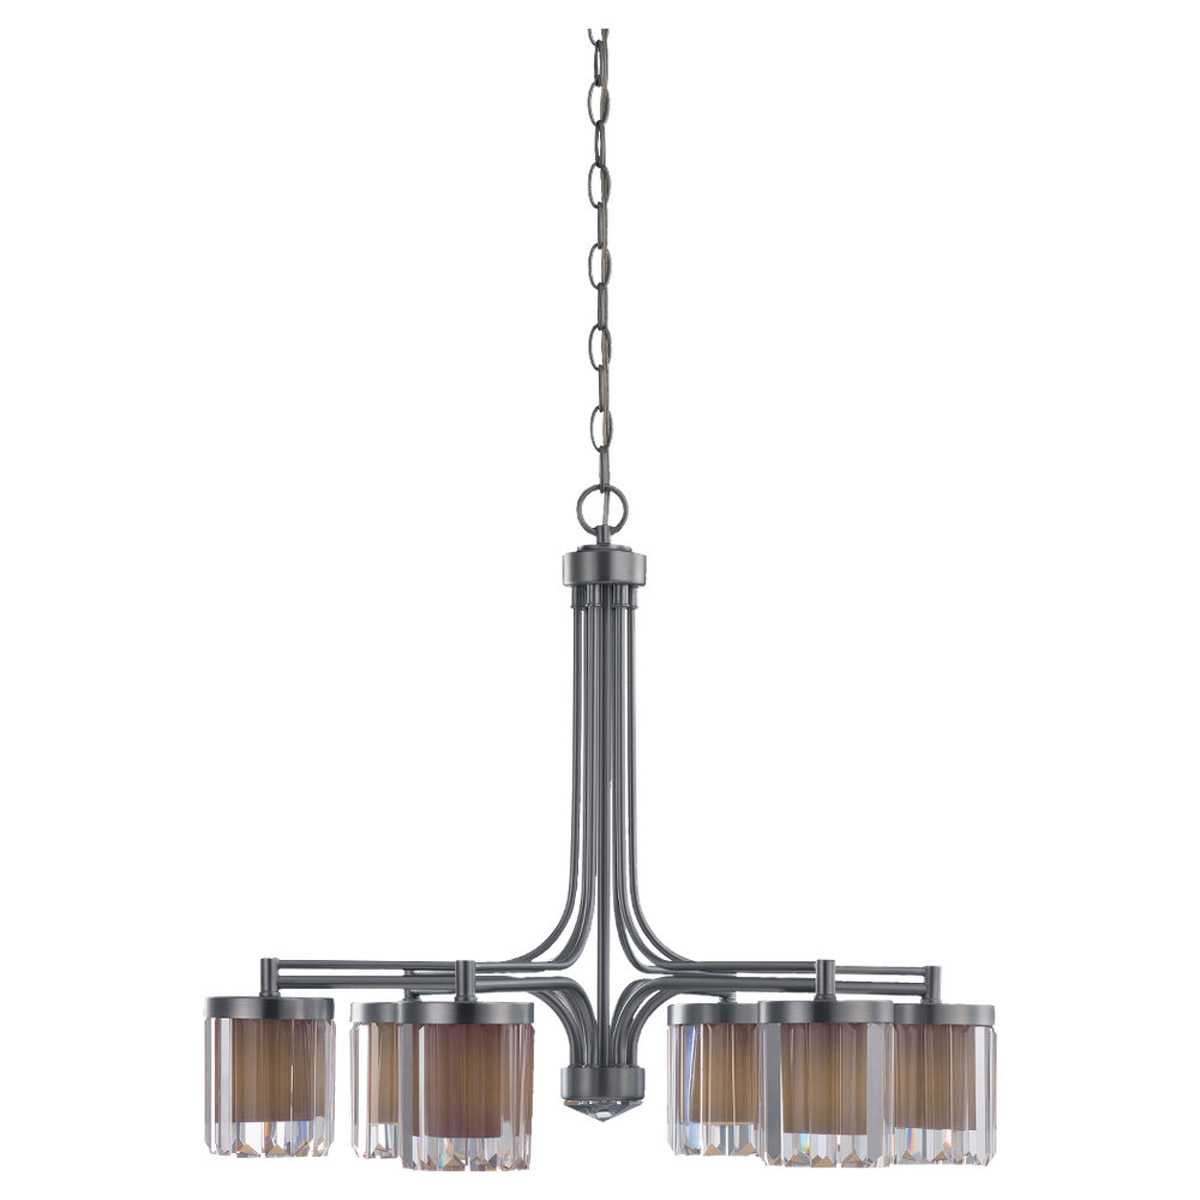 Sea Gull Lighting Nuit Noir Crystal 6 Light Chandelier in Brushed Chrome 31692-863 photo